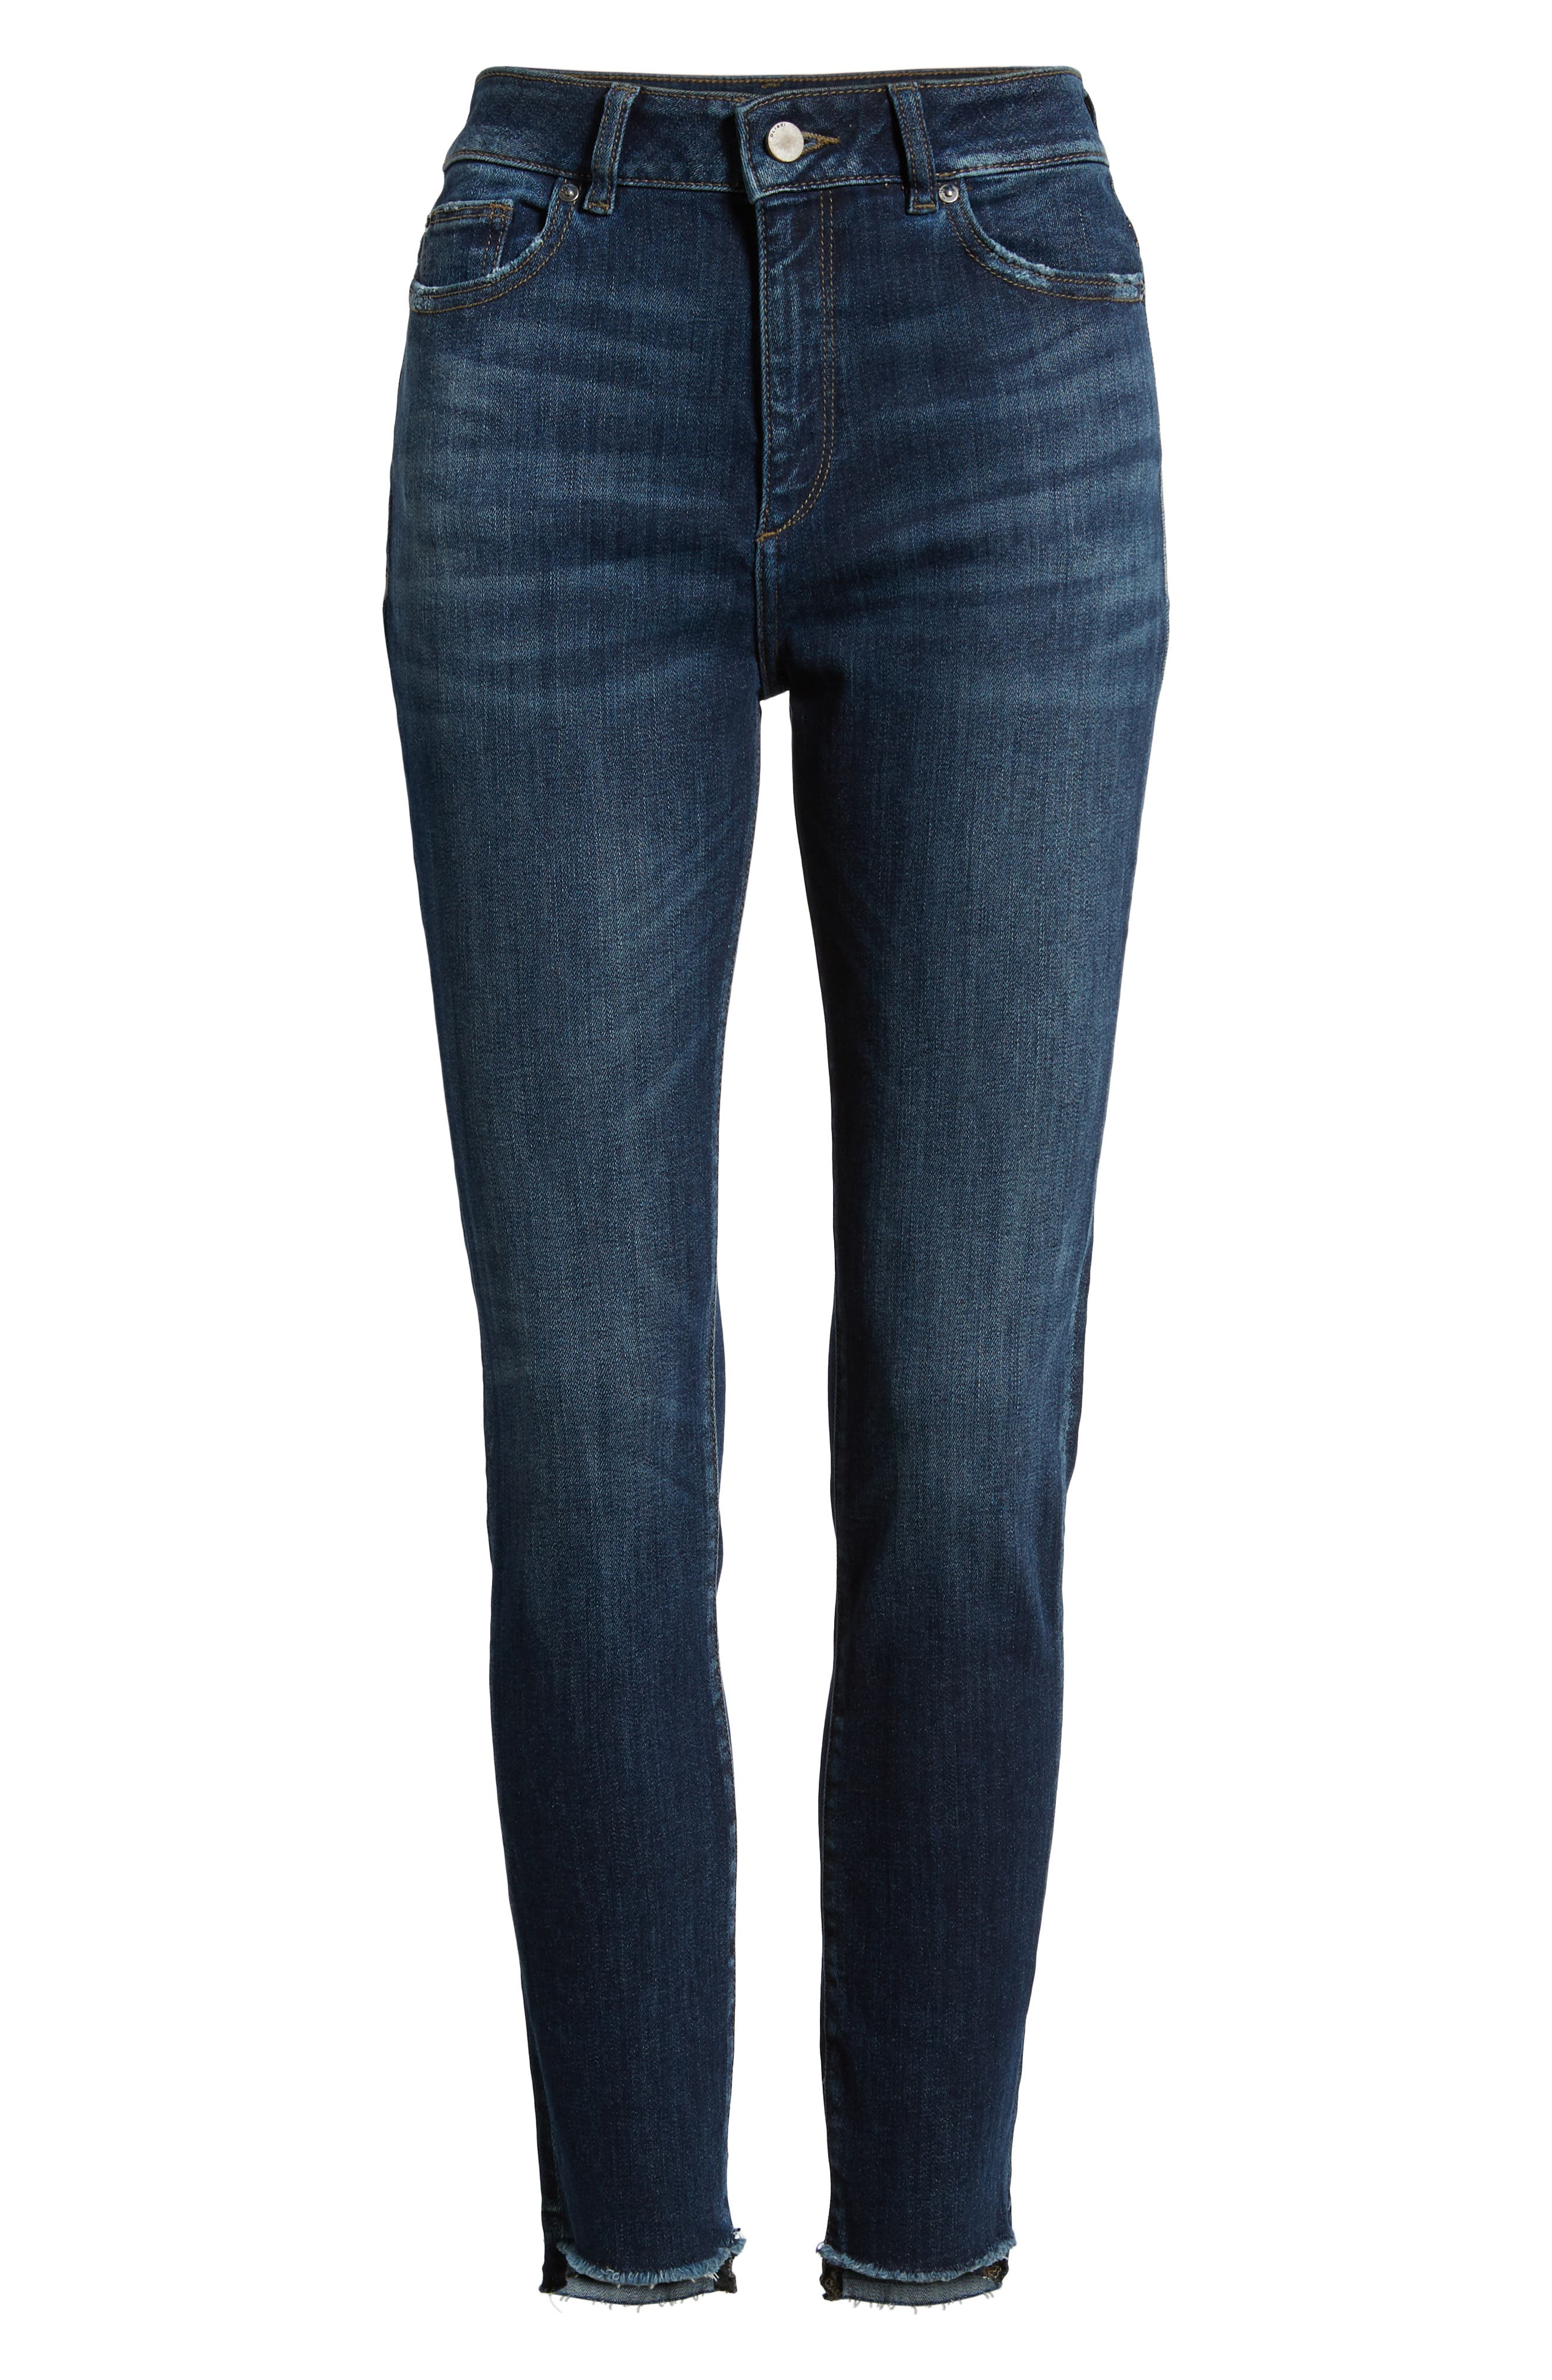 Chrissy Ultra High Waist Ankle Skinny Jeans,                             Alternate thumbnail 7, color,                             WAKELY